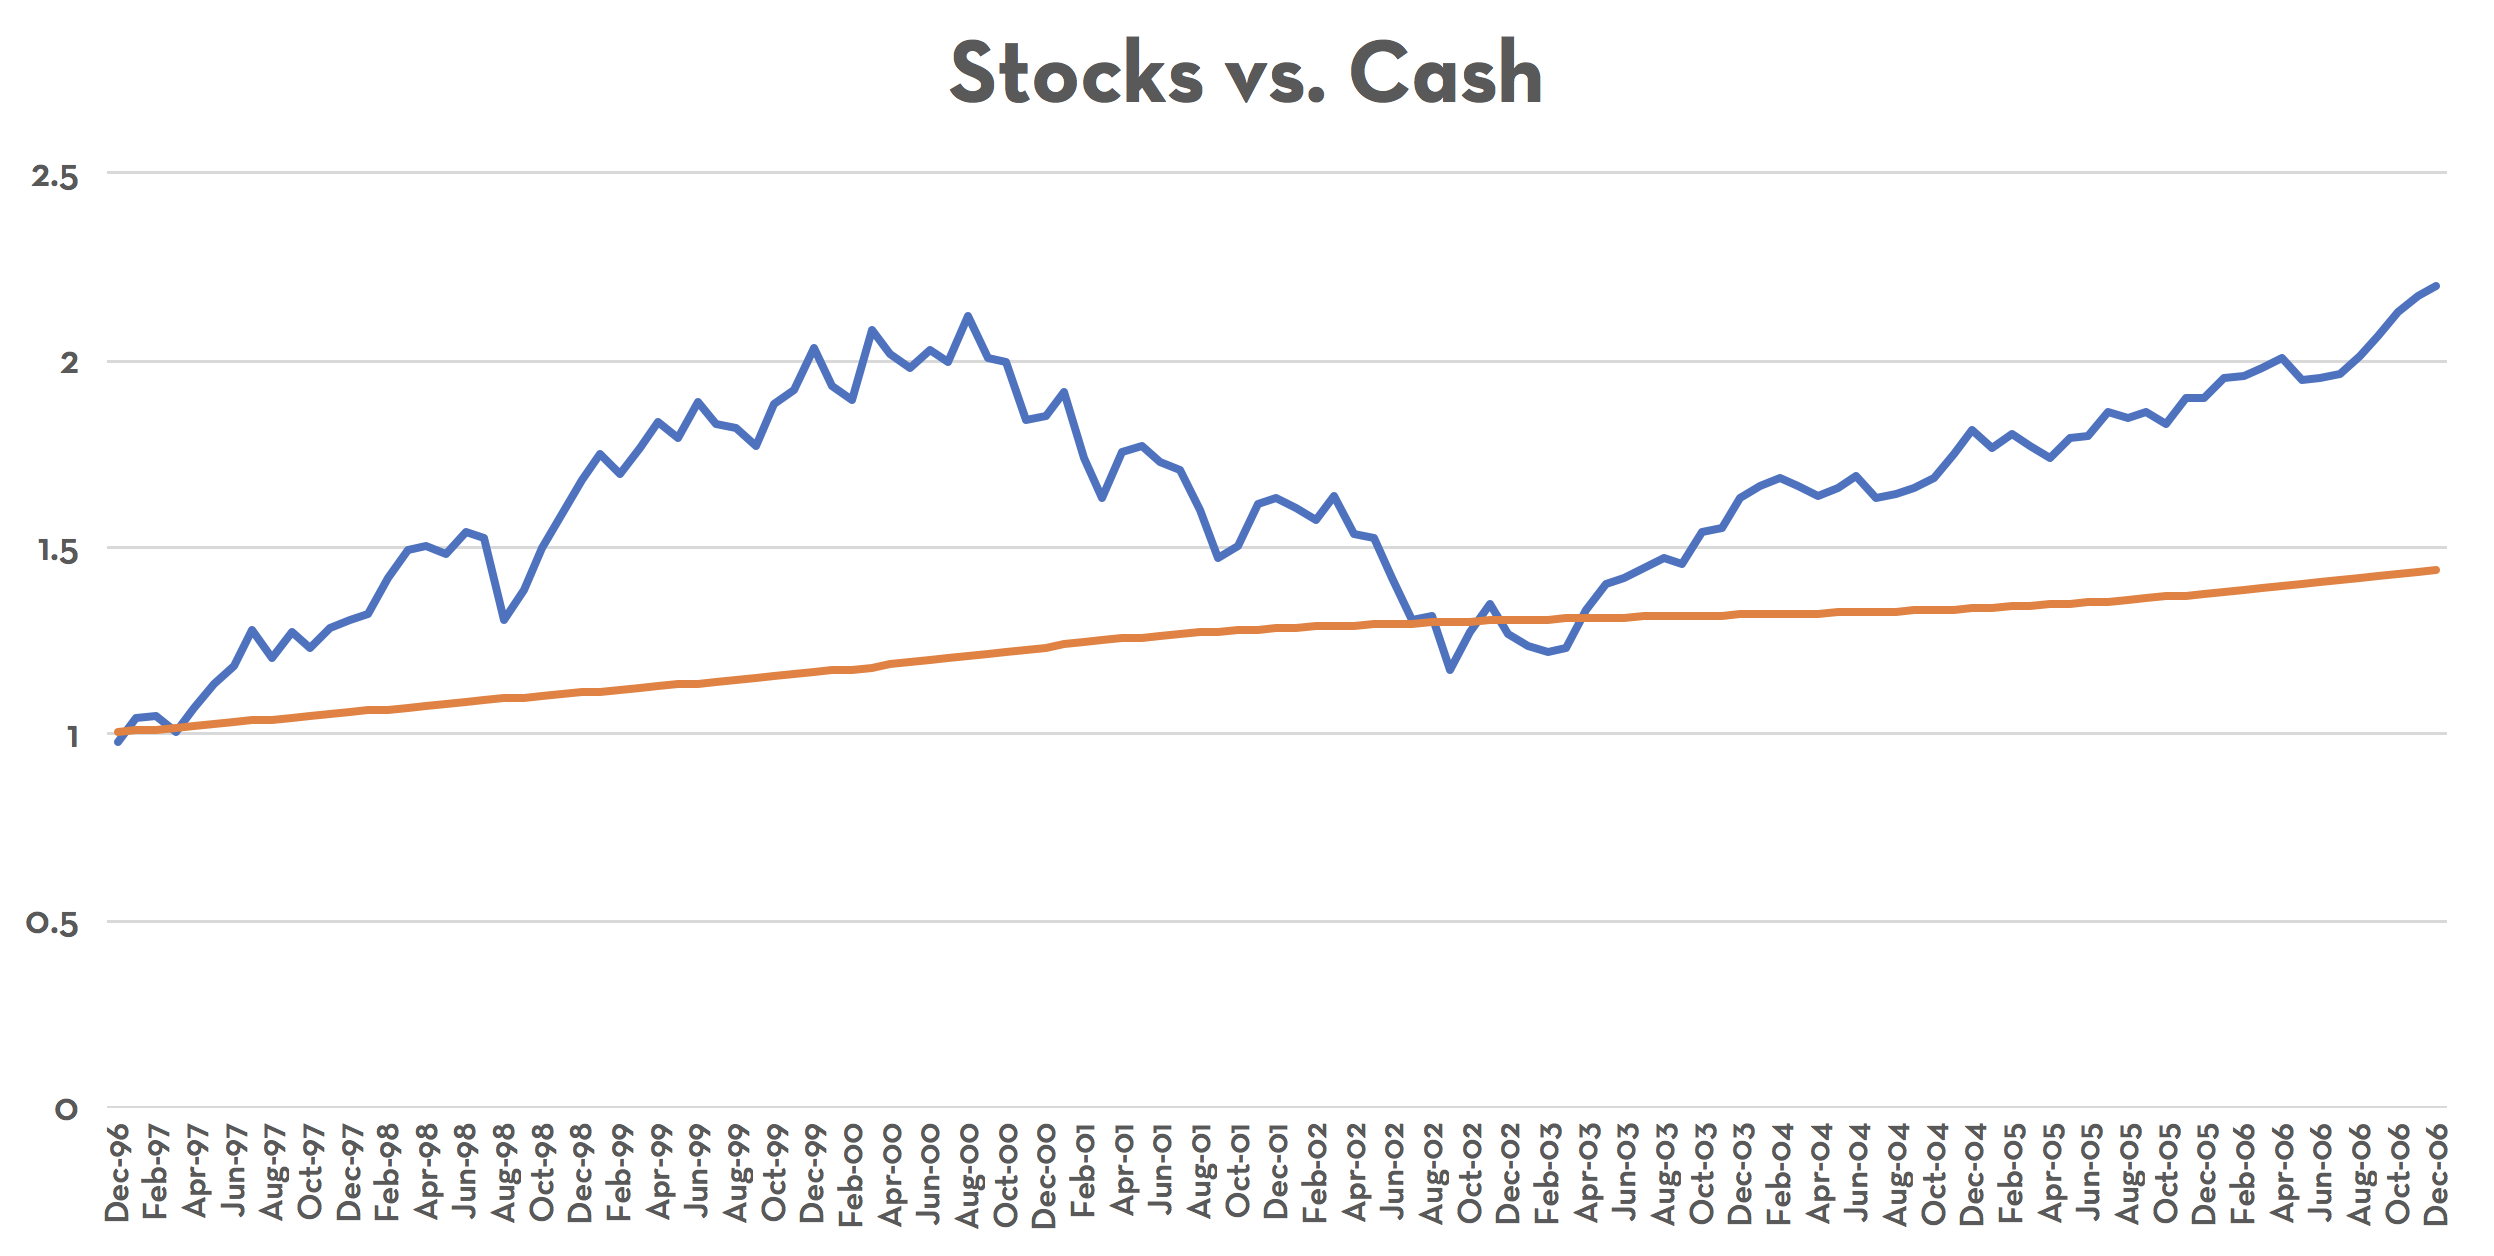 Stocks vs. Cash